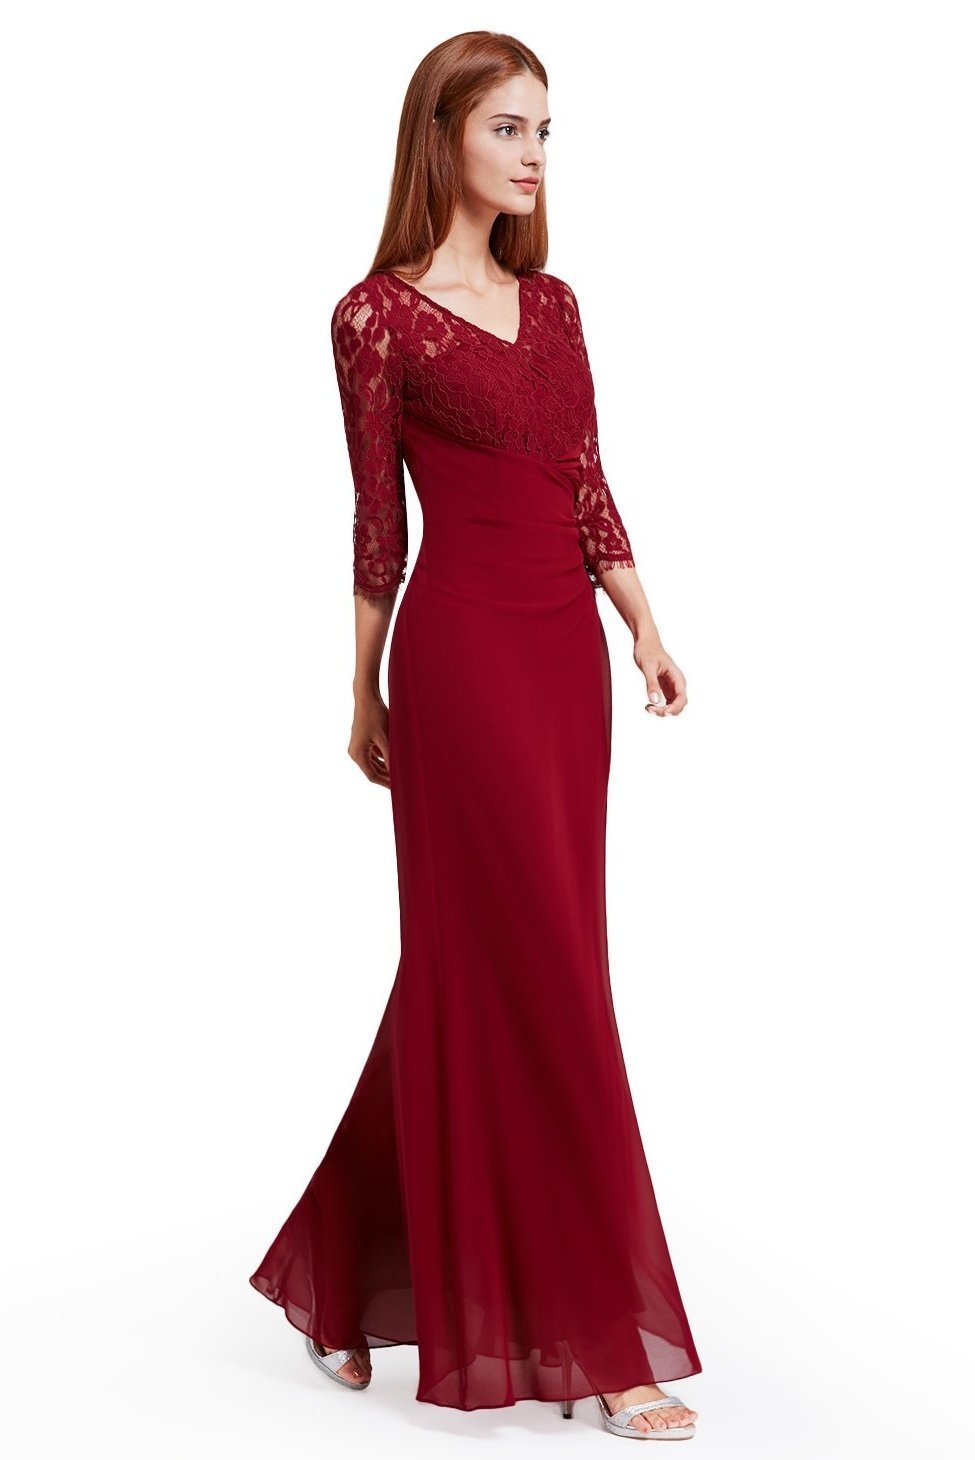 Burgundy A-Line Scoop Neck 1 2 Length Sleeves Evening Dress With Lace  f540db343